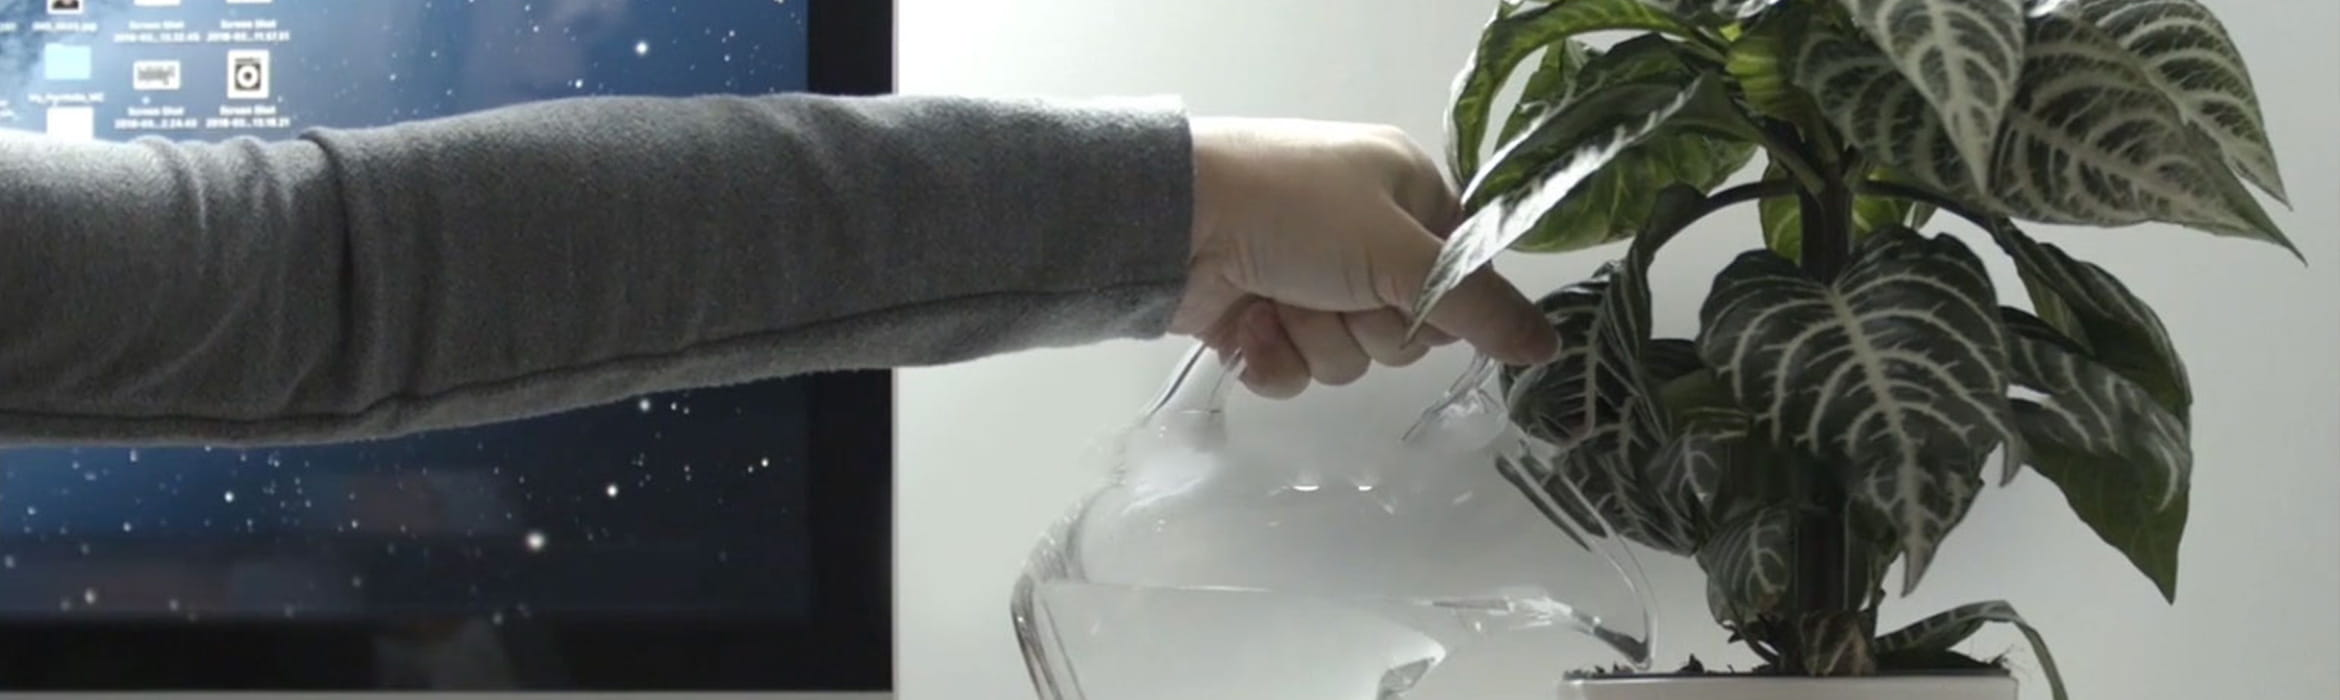 Person watering plant